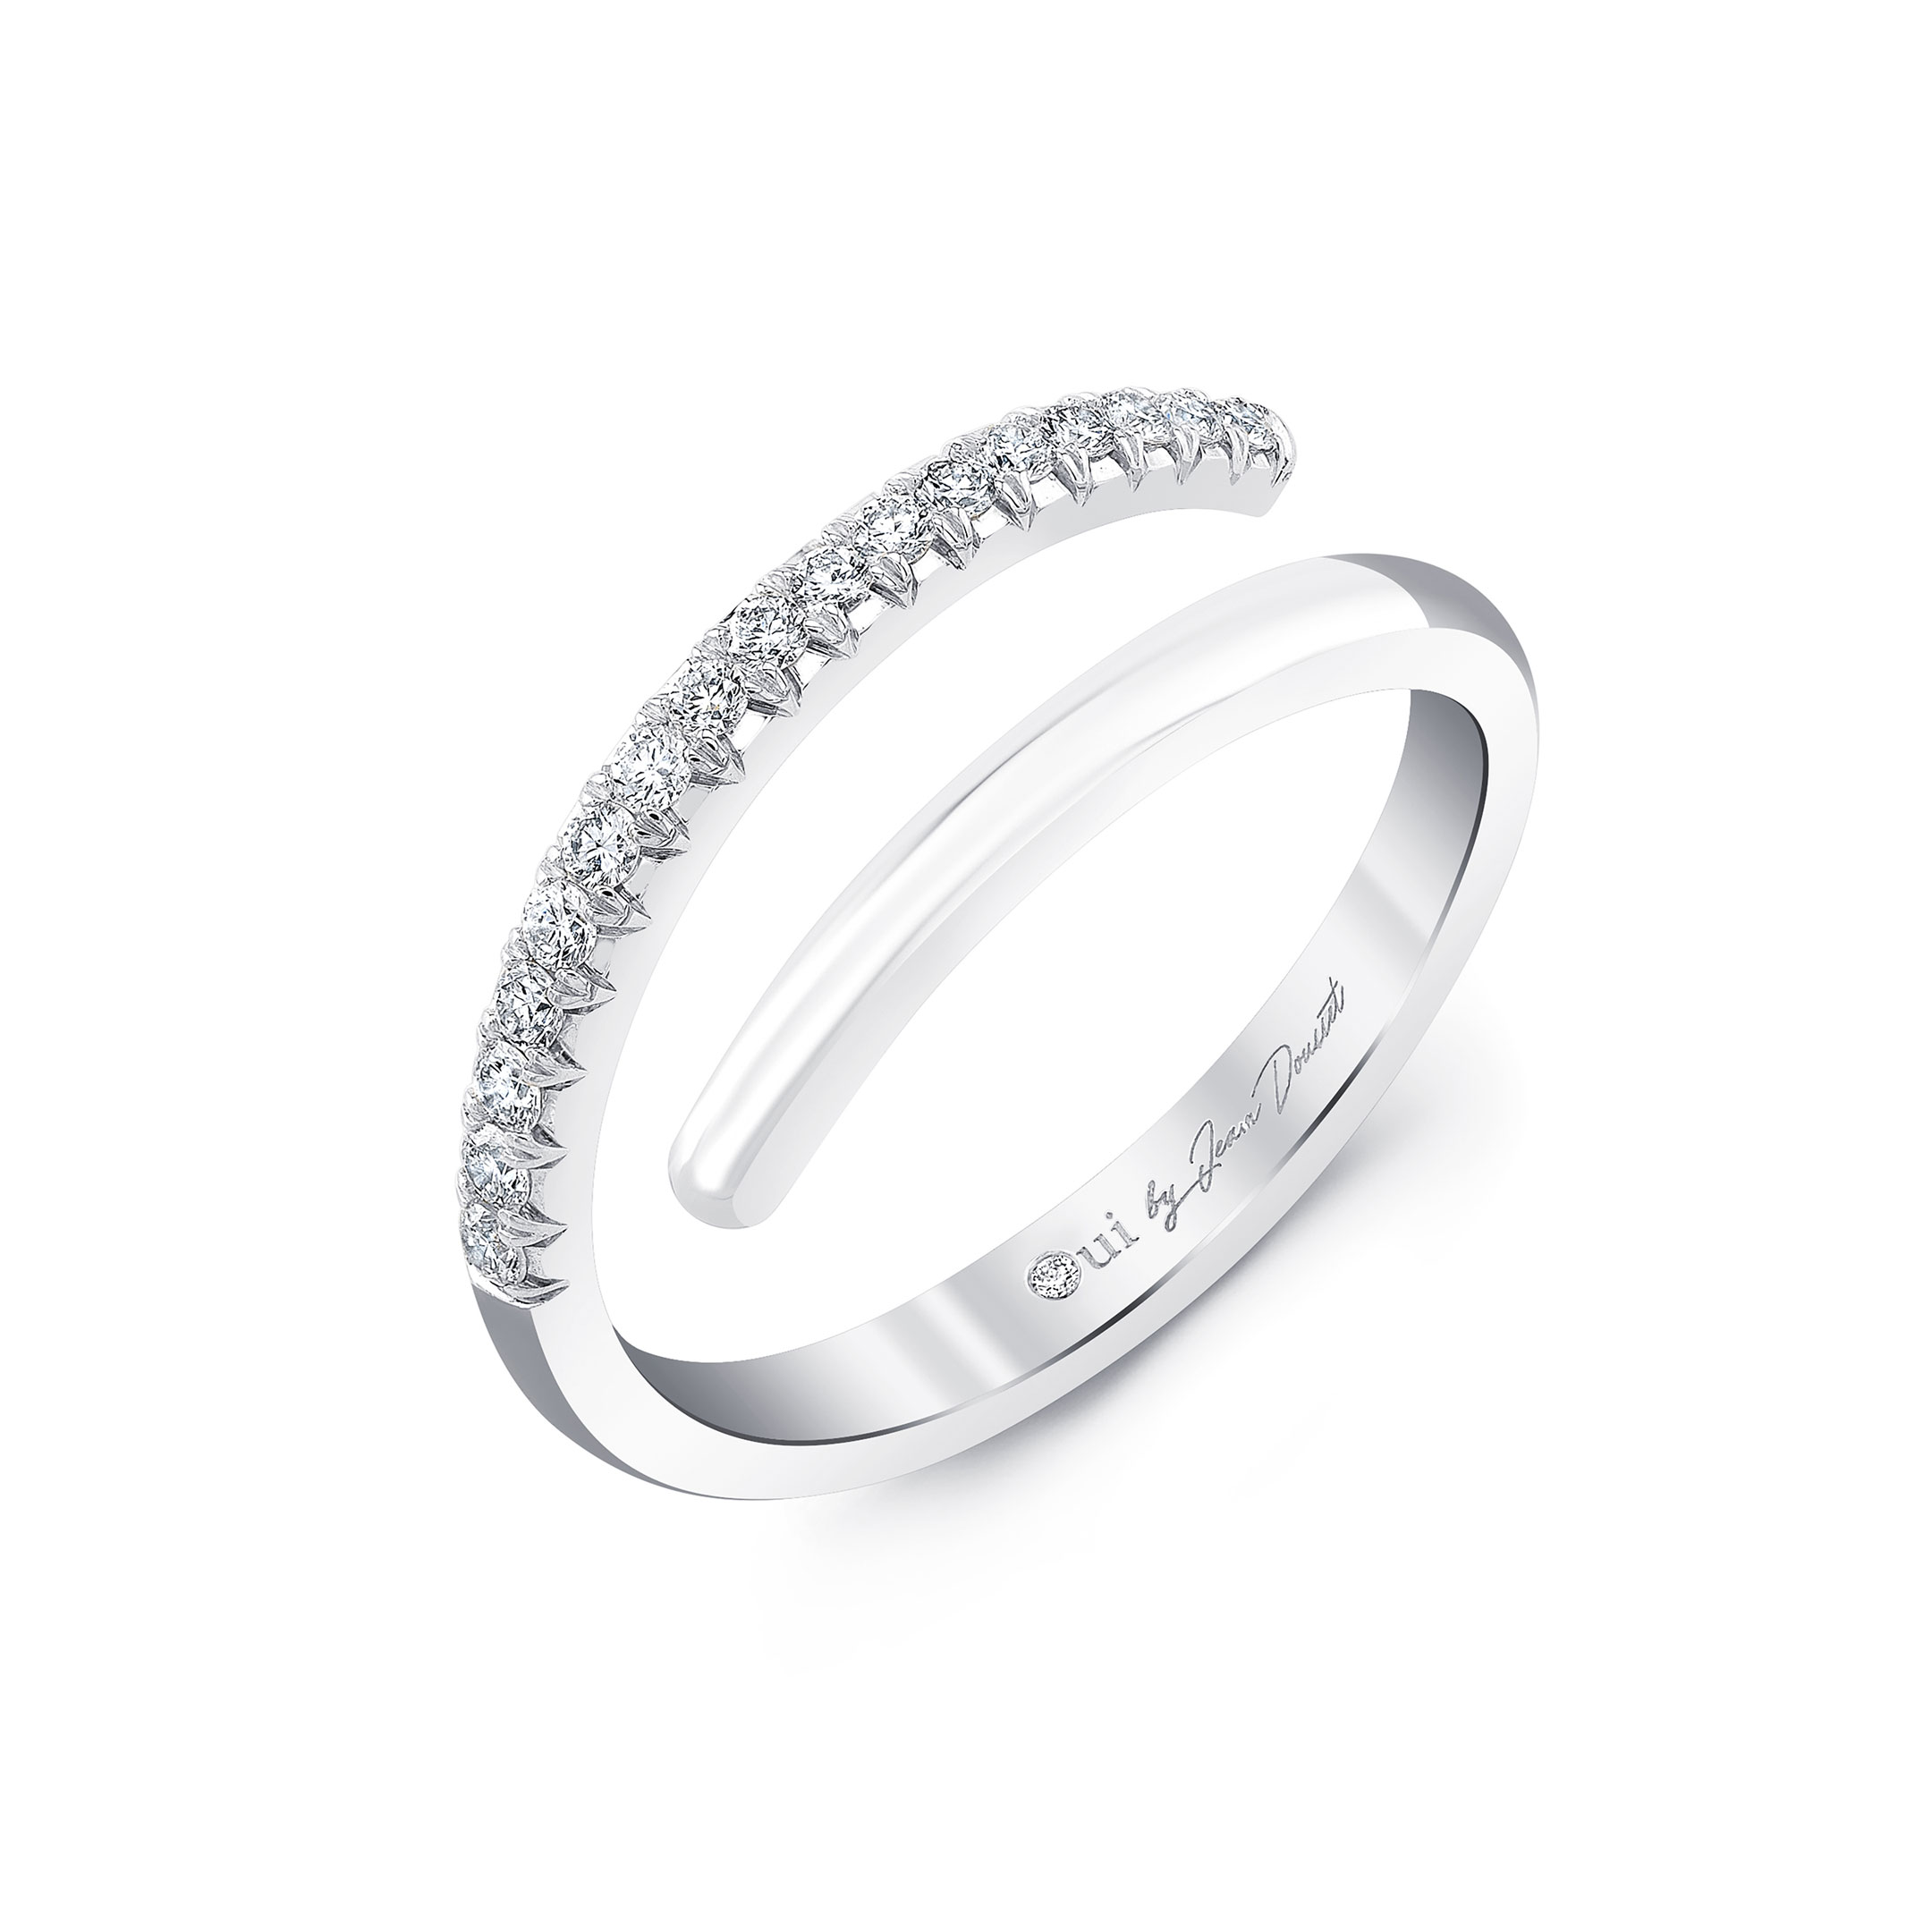 Half Diamond Pavé Wrap Ring in 18k White Gold Profile View by Oui by Jean Dousset